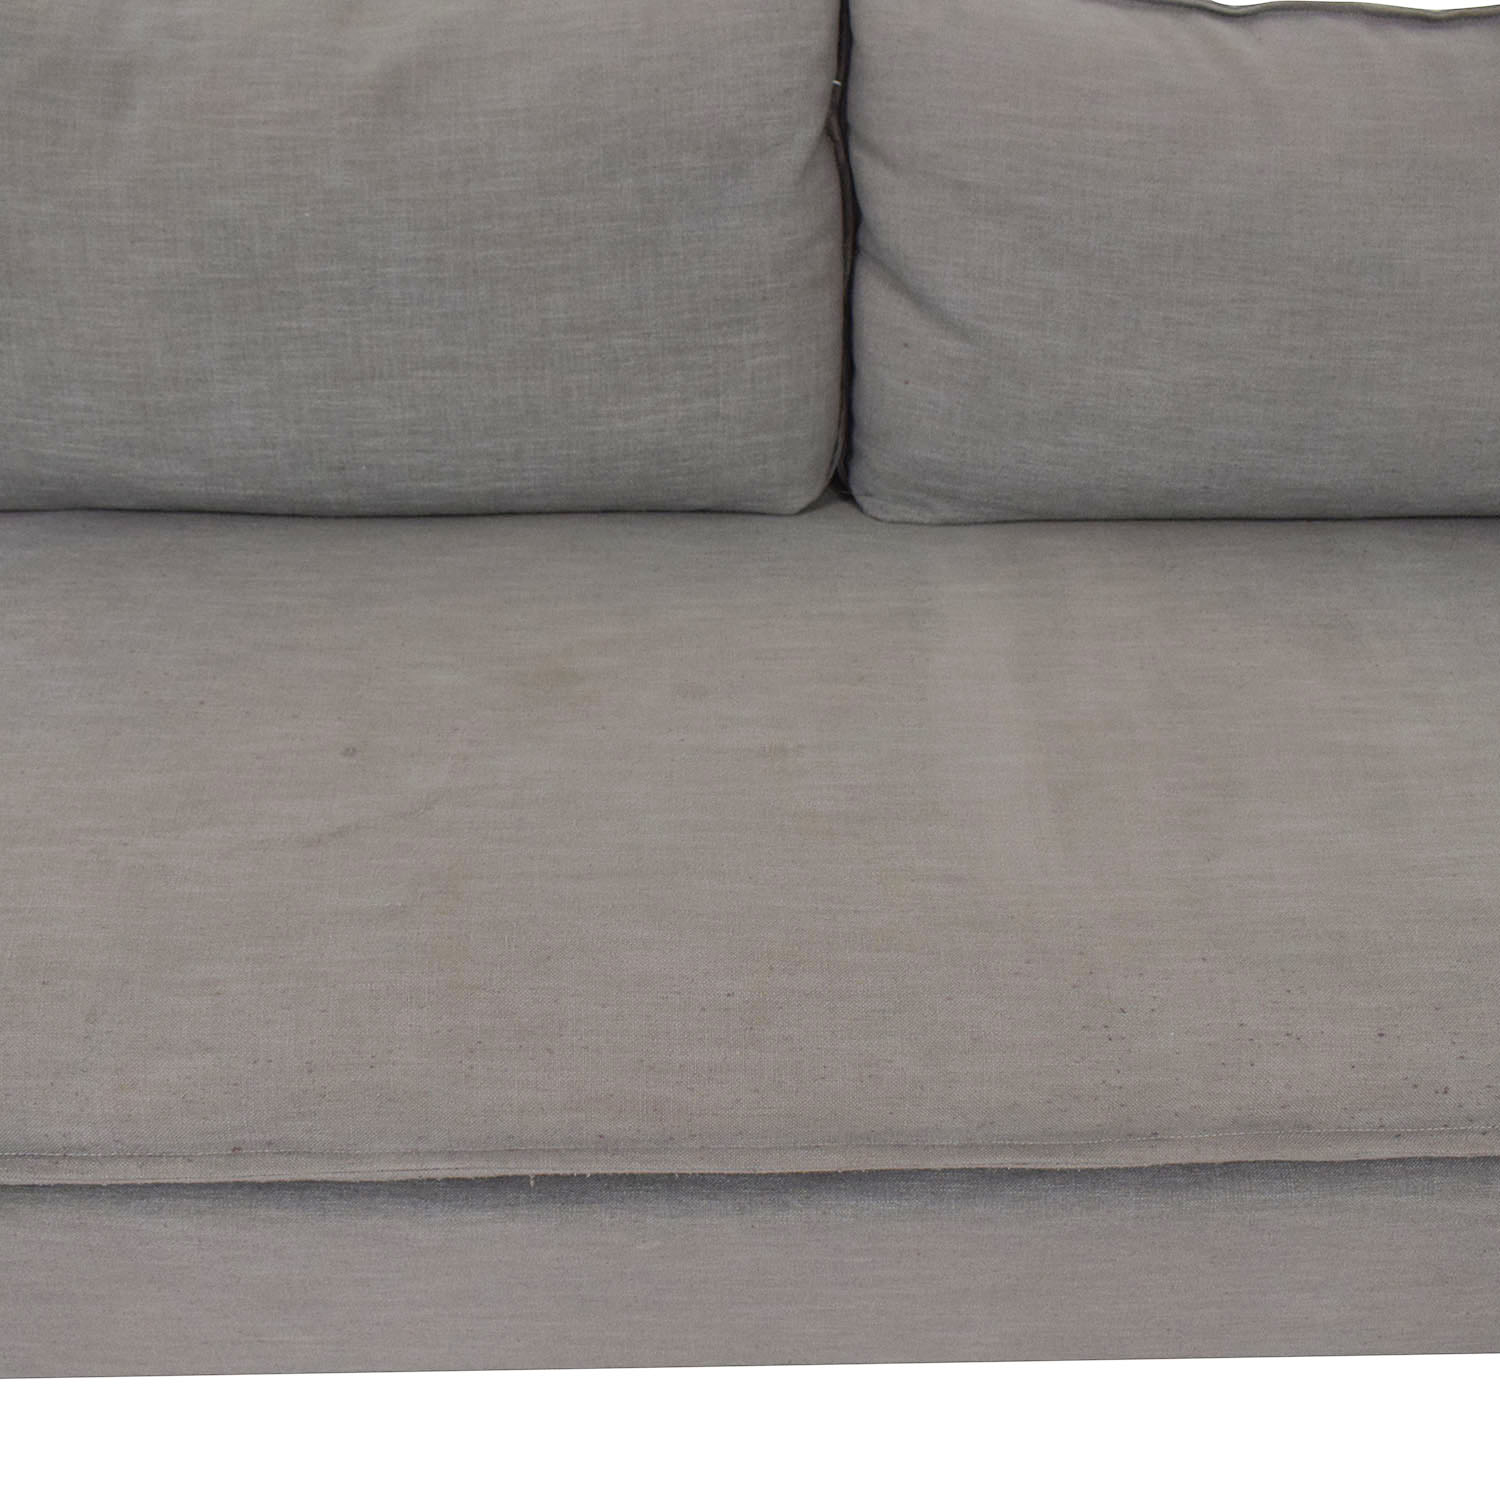 West Elm West Elm Bliss Sofa Sofas